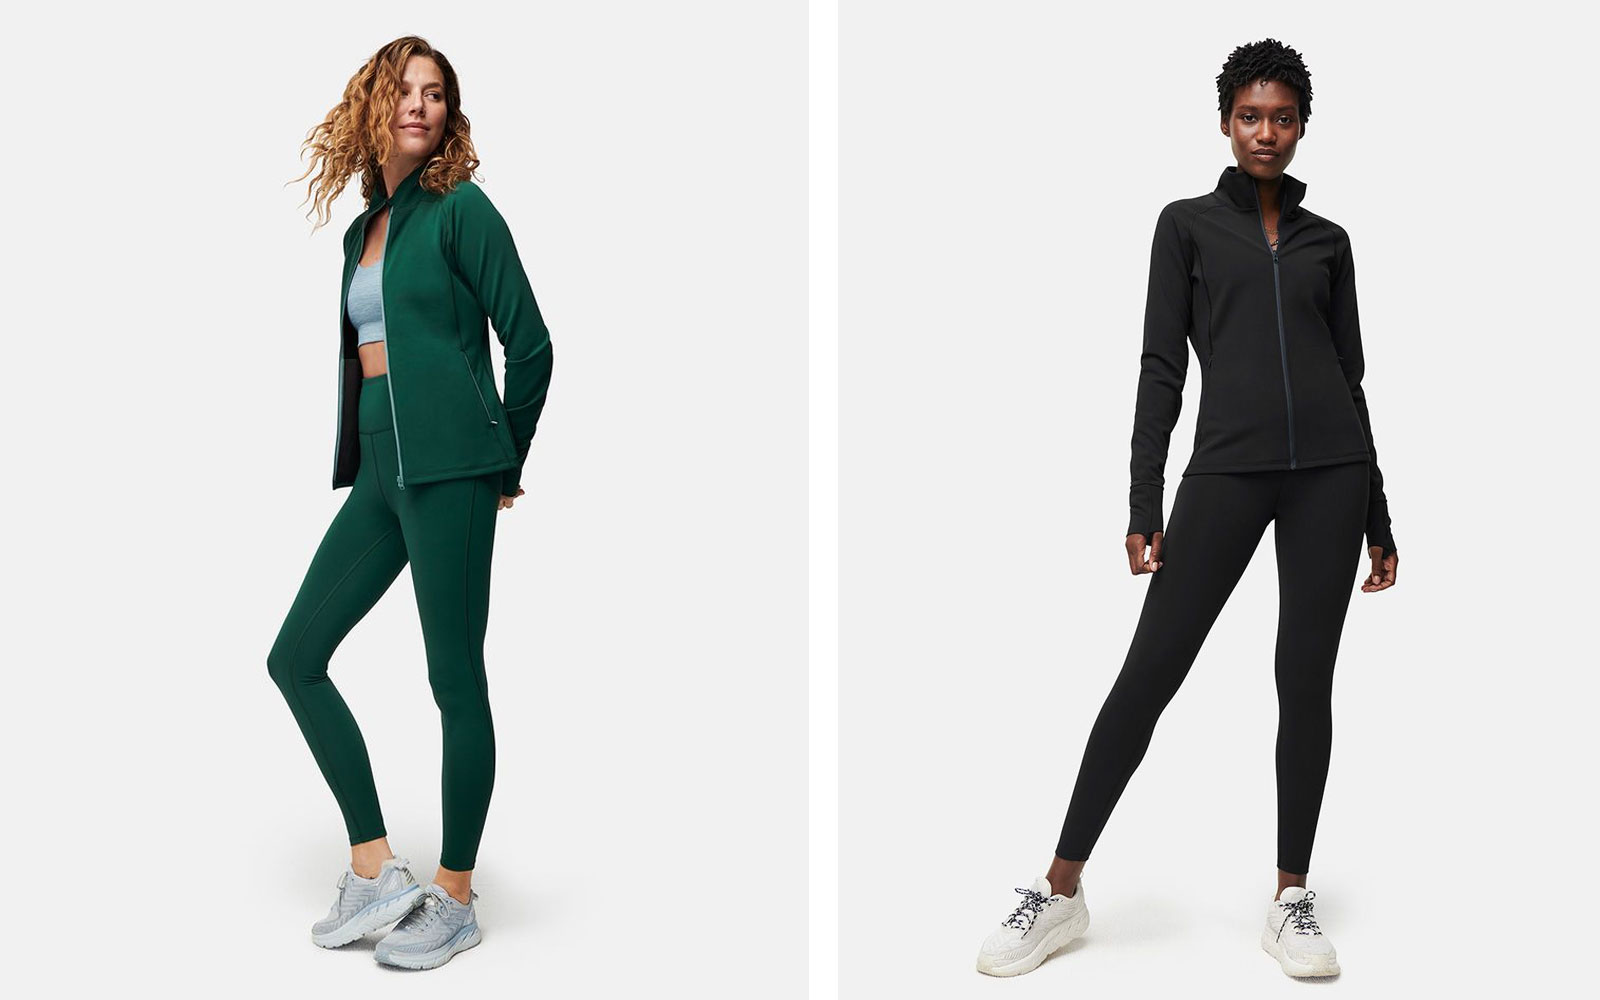 Women's Workout Jacket and Leggings in Green and Black